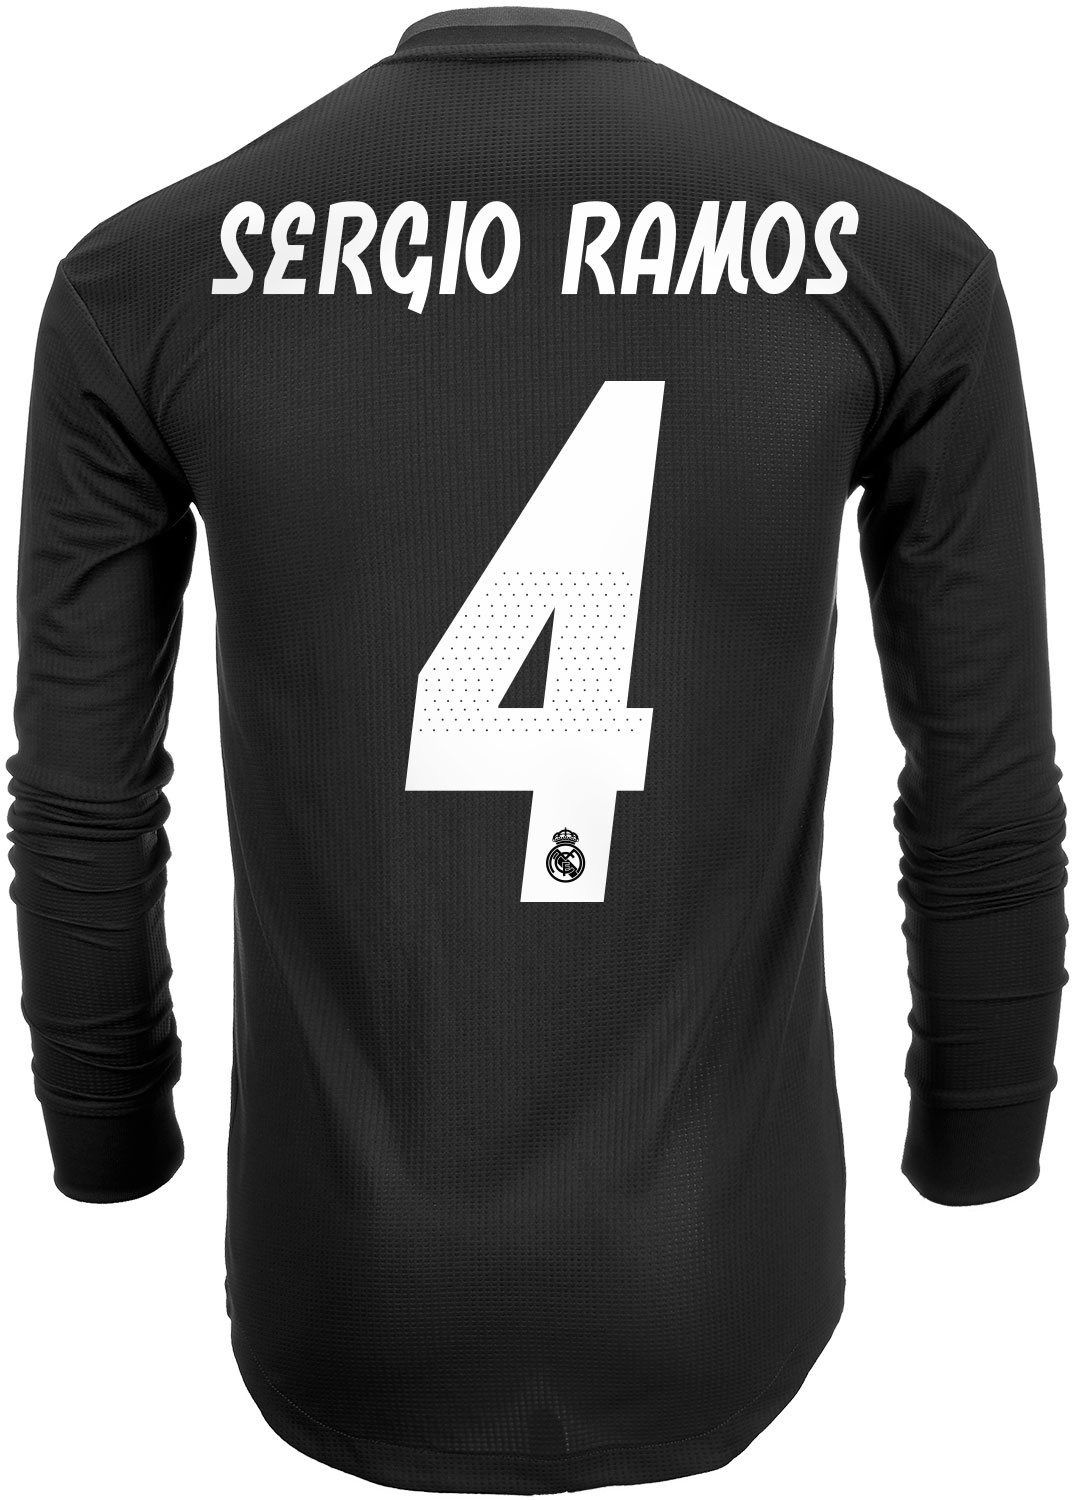 sneakers for cheap 51e30 b11a5 2018/19 adidas Sergio Ramos Real Madrid Authentic L/S Away ...